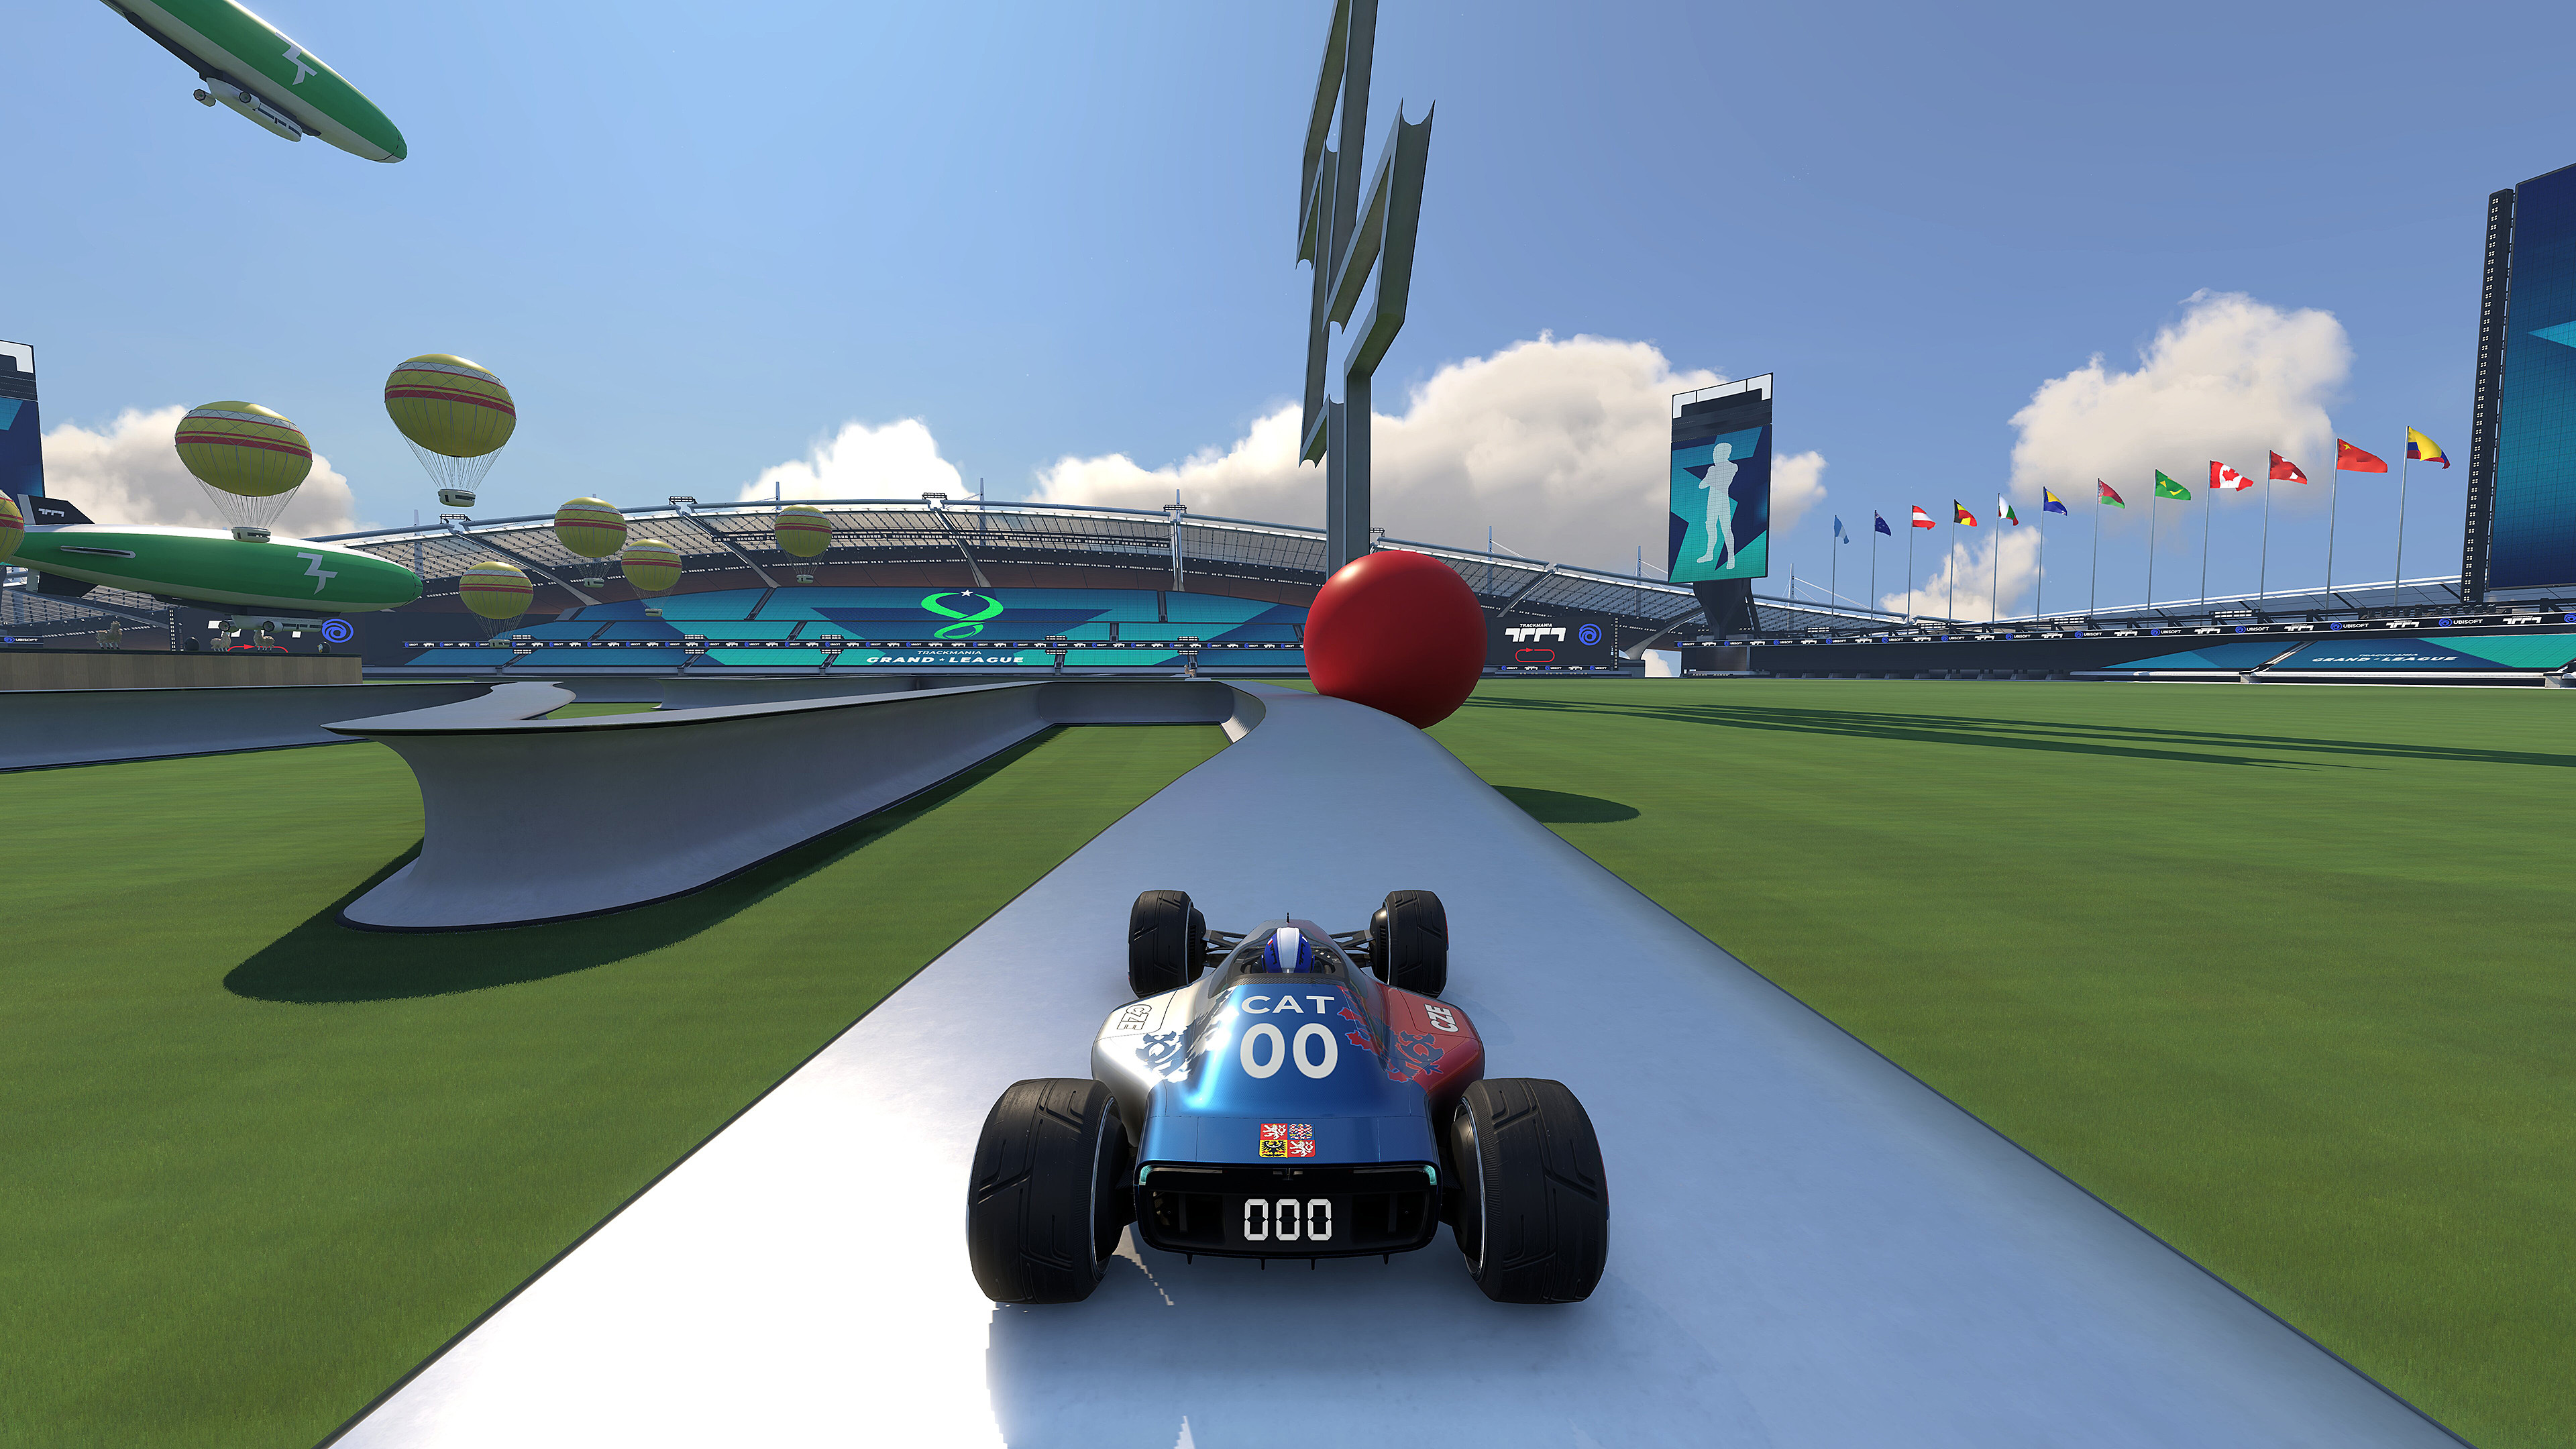 This is what driving on the logo is looking in game.